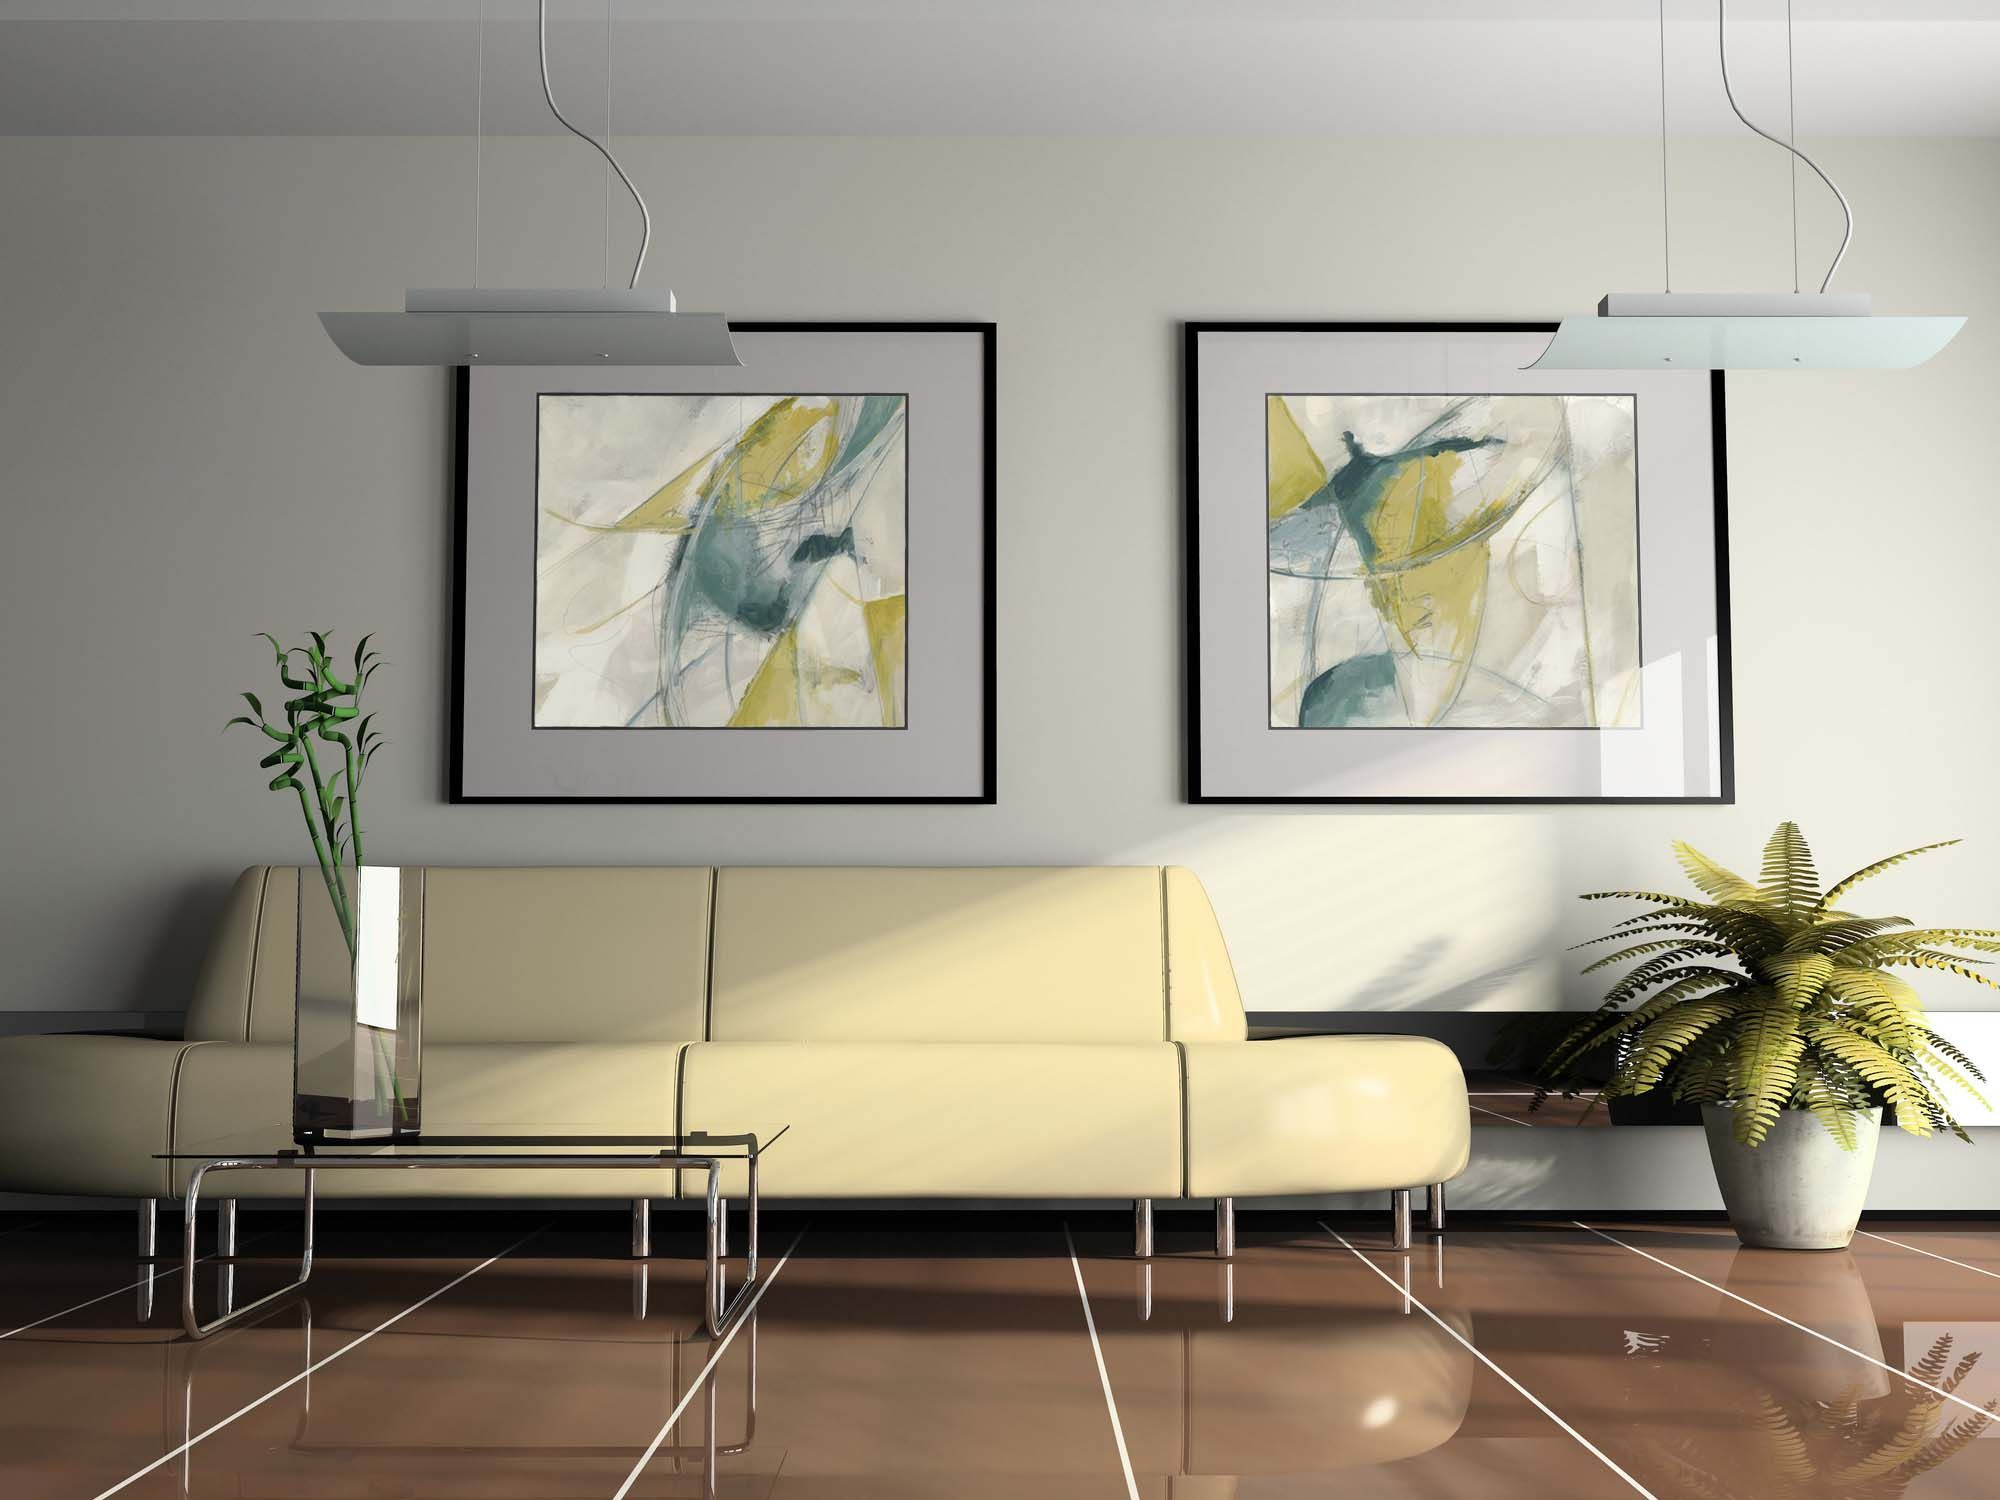 corporate office decor with images corporate office on business office color schemes 2021 id=41460